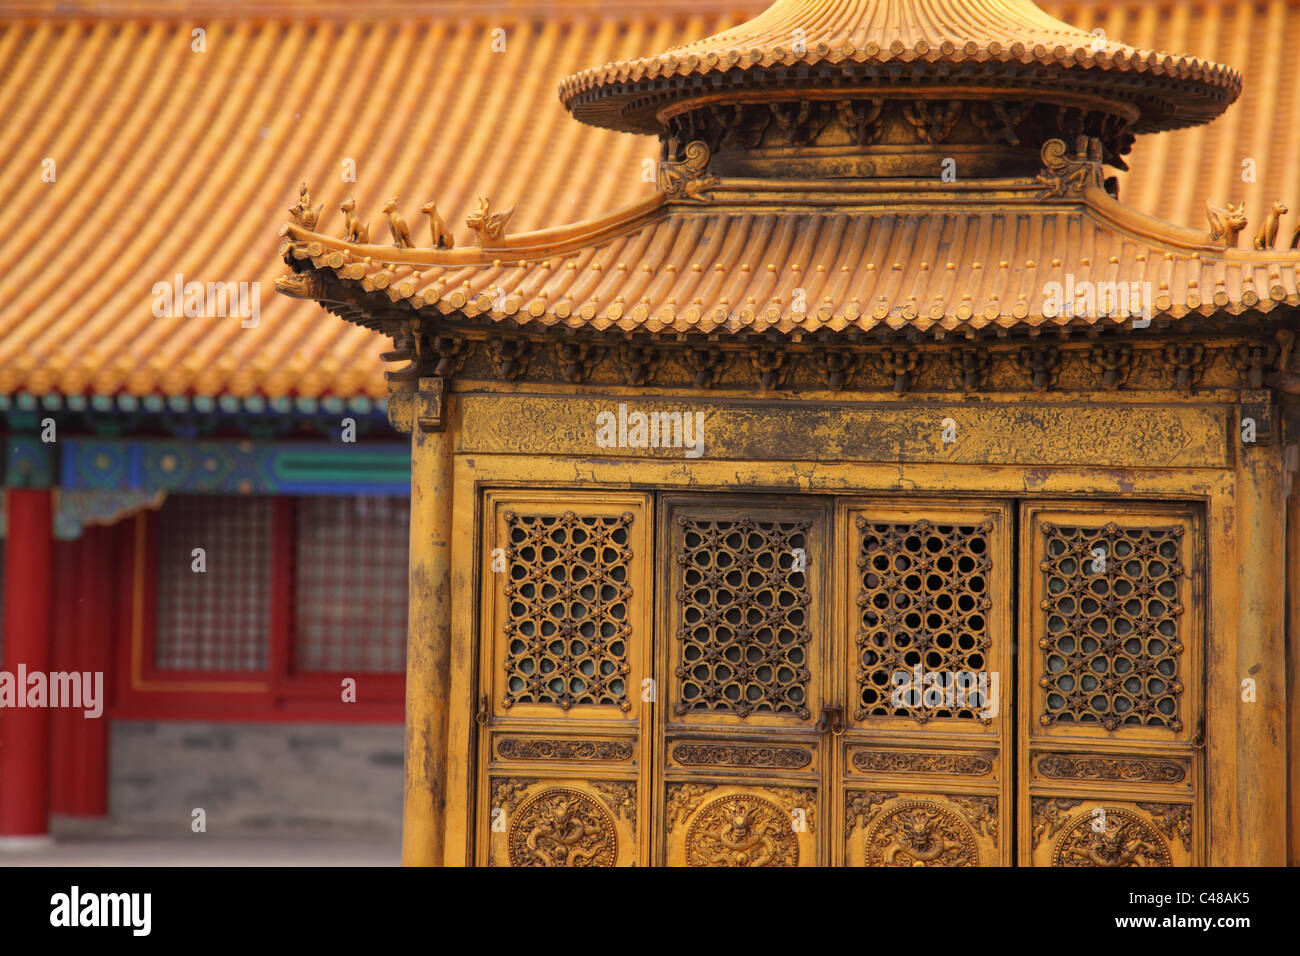 Architectural detail, Forbidden City, Beijing, China - Stock Image